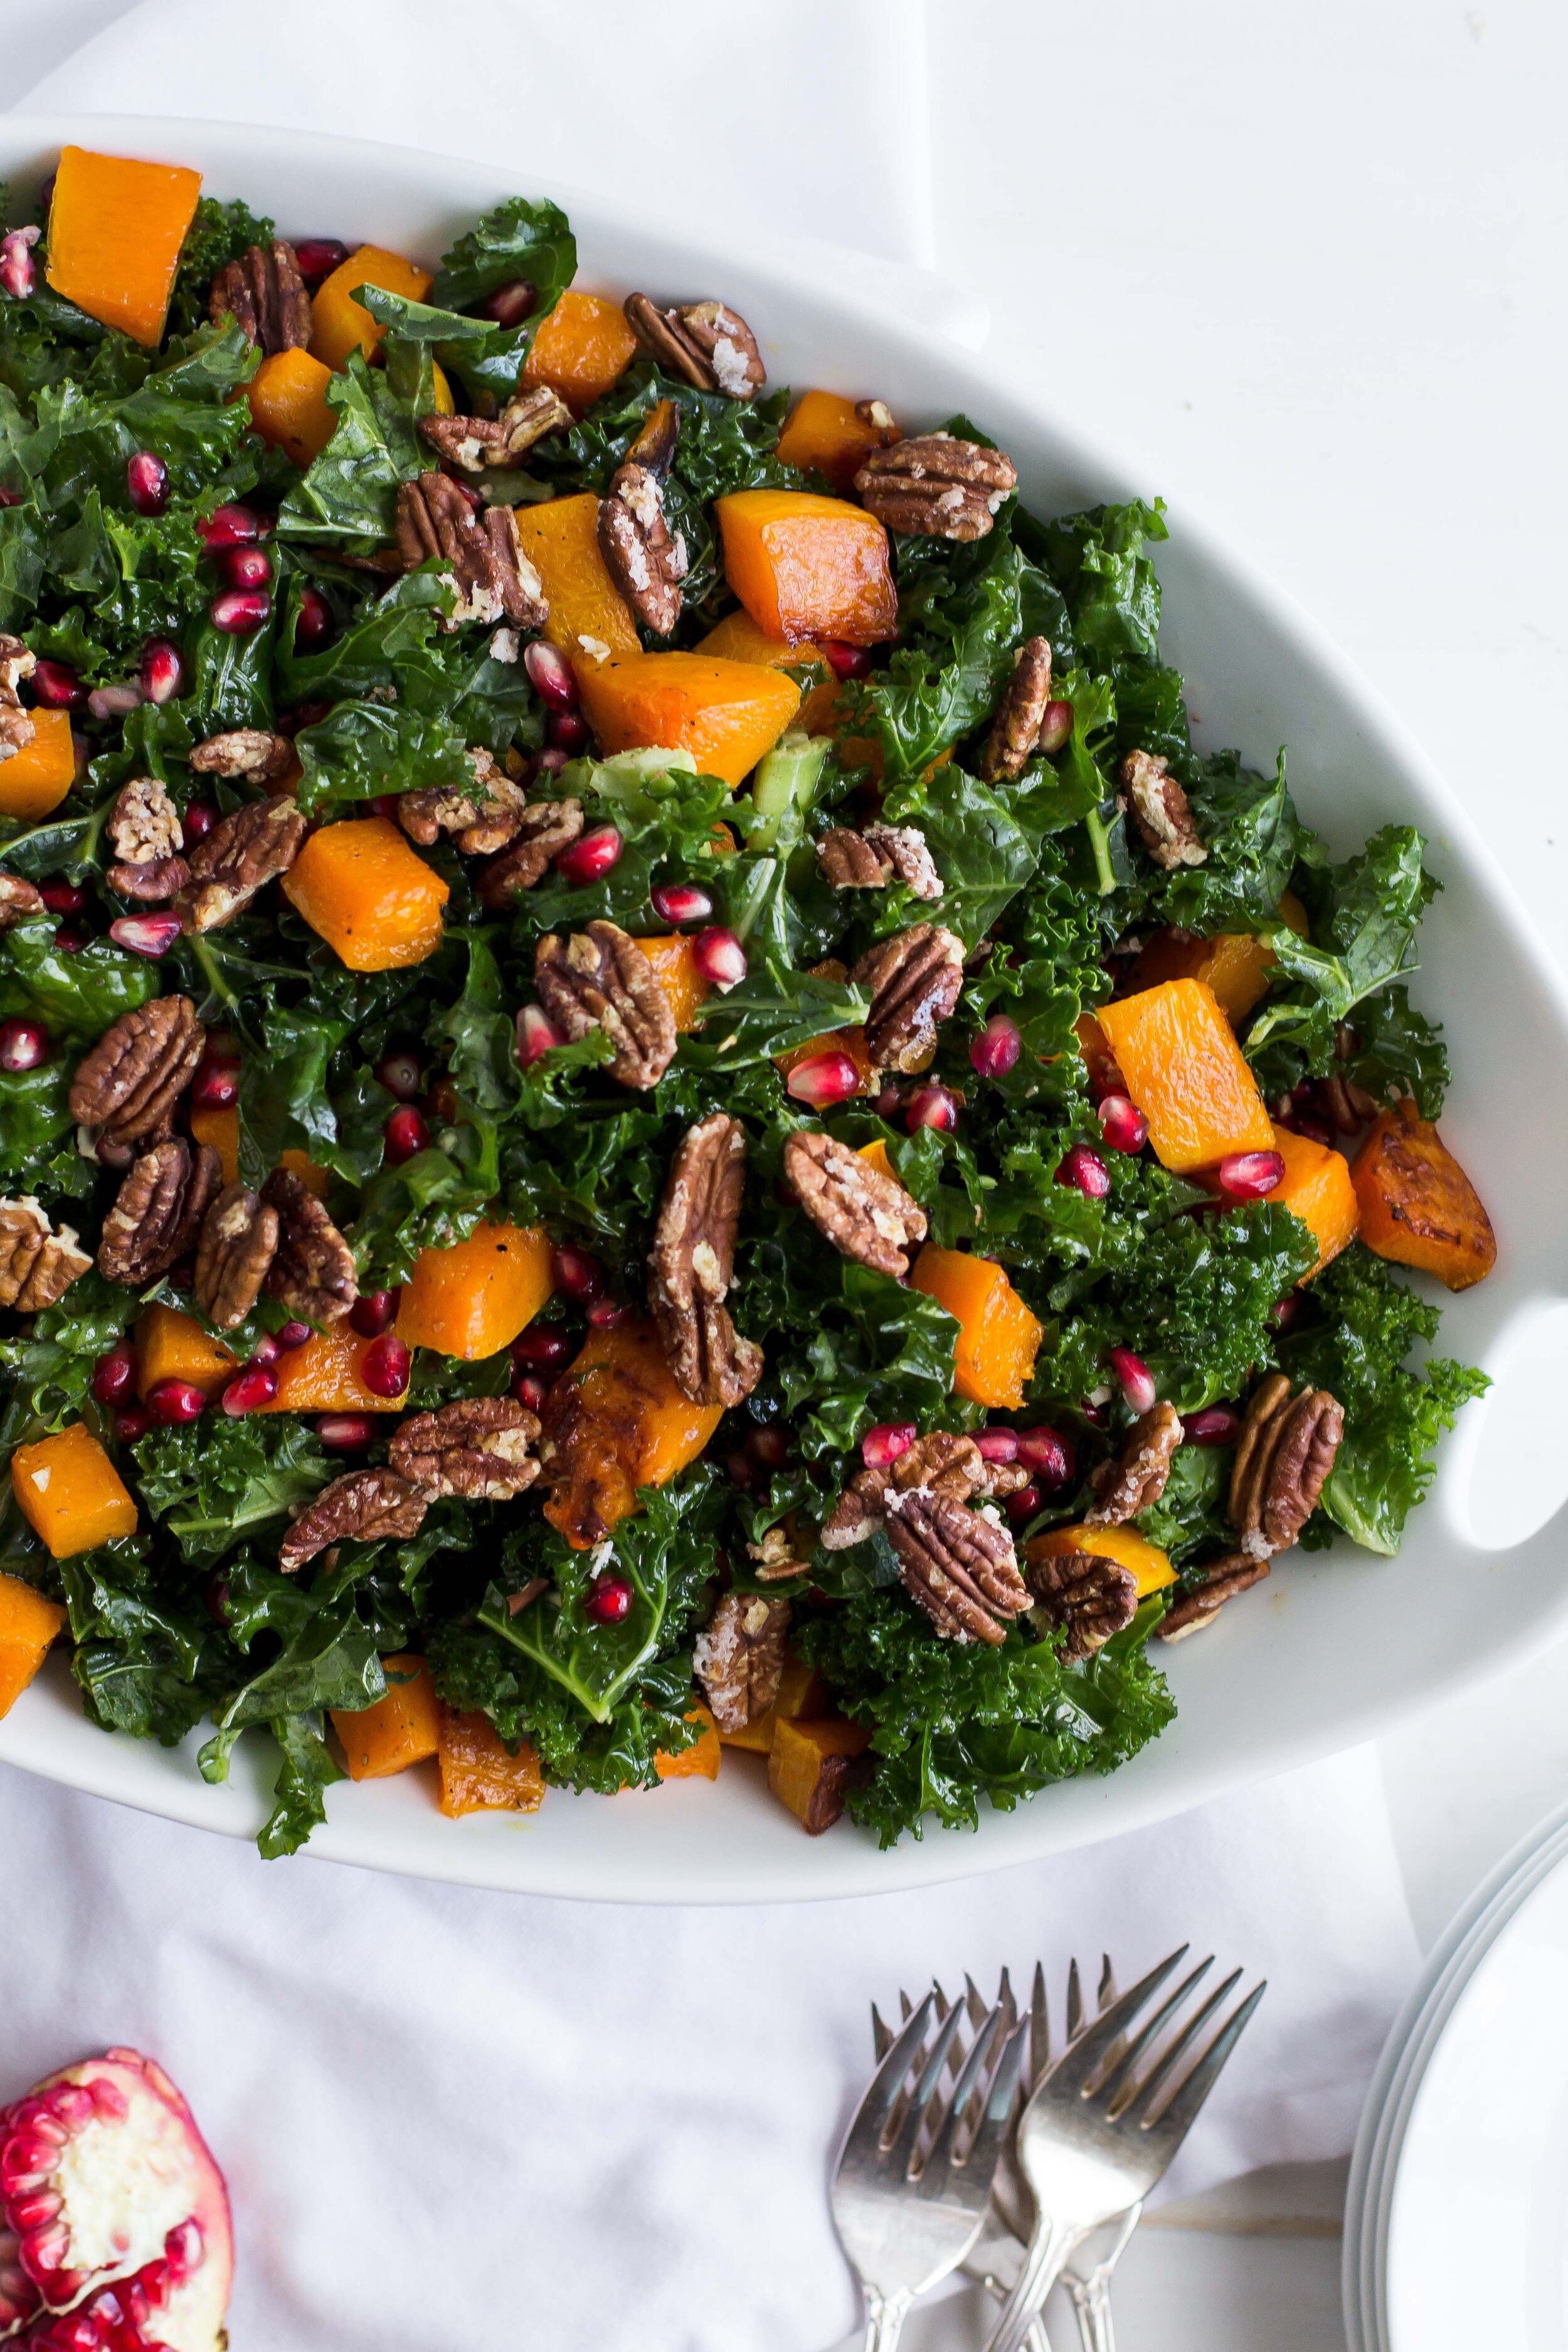 Roasted Squash + Kale Salad with Maple-Dijon Vinaigrette | Sarah J. Hauser #fall #salad #butternutsquash